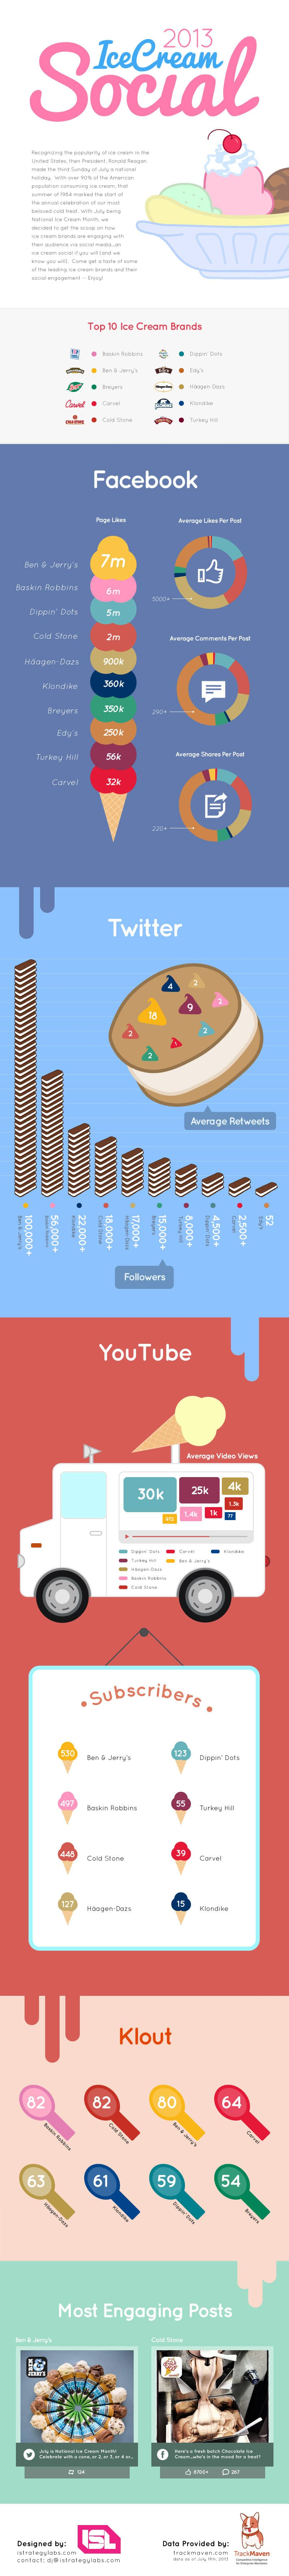 10 Best Ice Cream Brands According To Social Media [Infographic]